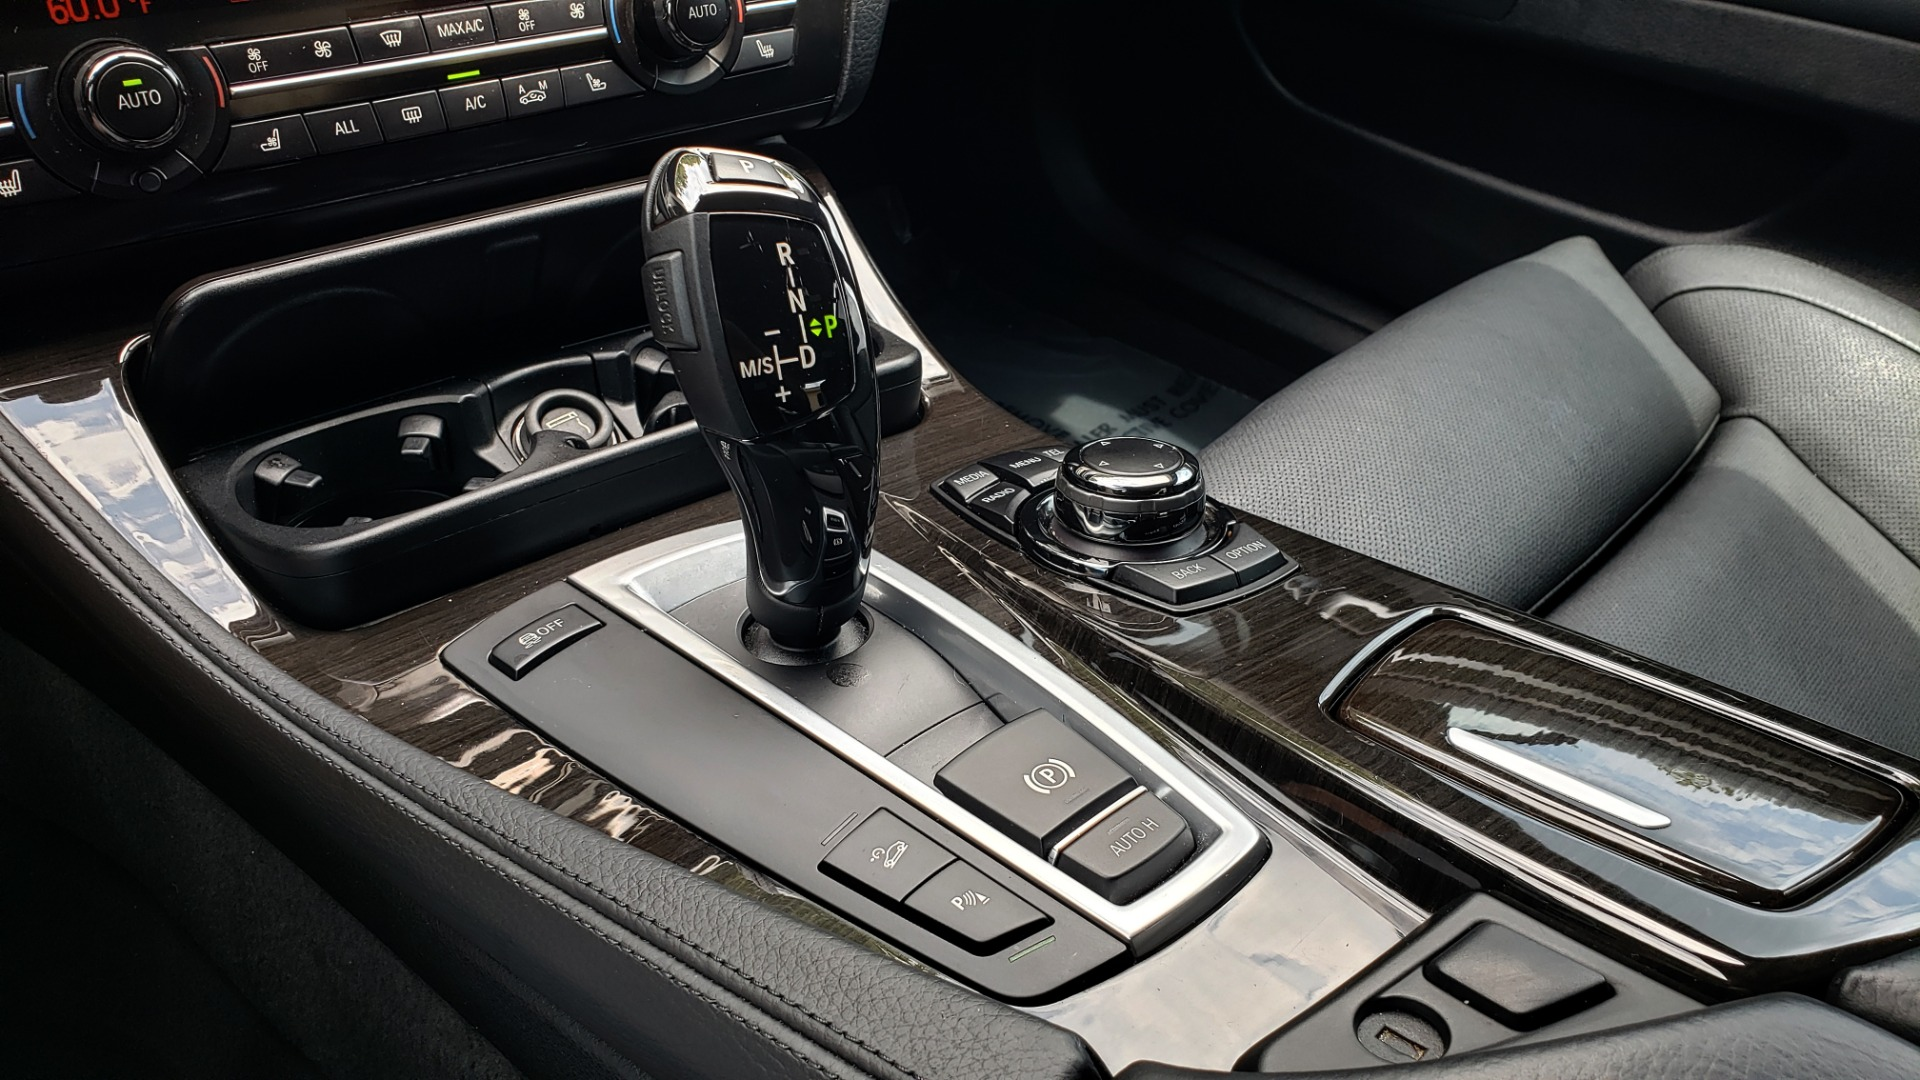 Used 2013 BMW 5 SERIES 550I XDRIVE LUX PKG / EXEC / COLD WTHR / NAV / SUNROOF / REARVIEW for sale $17,995 at Formula Imports in Charlotte NC 28227 43